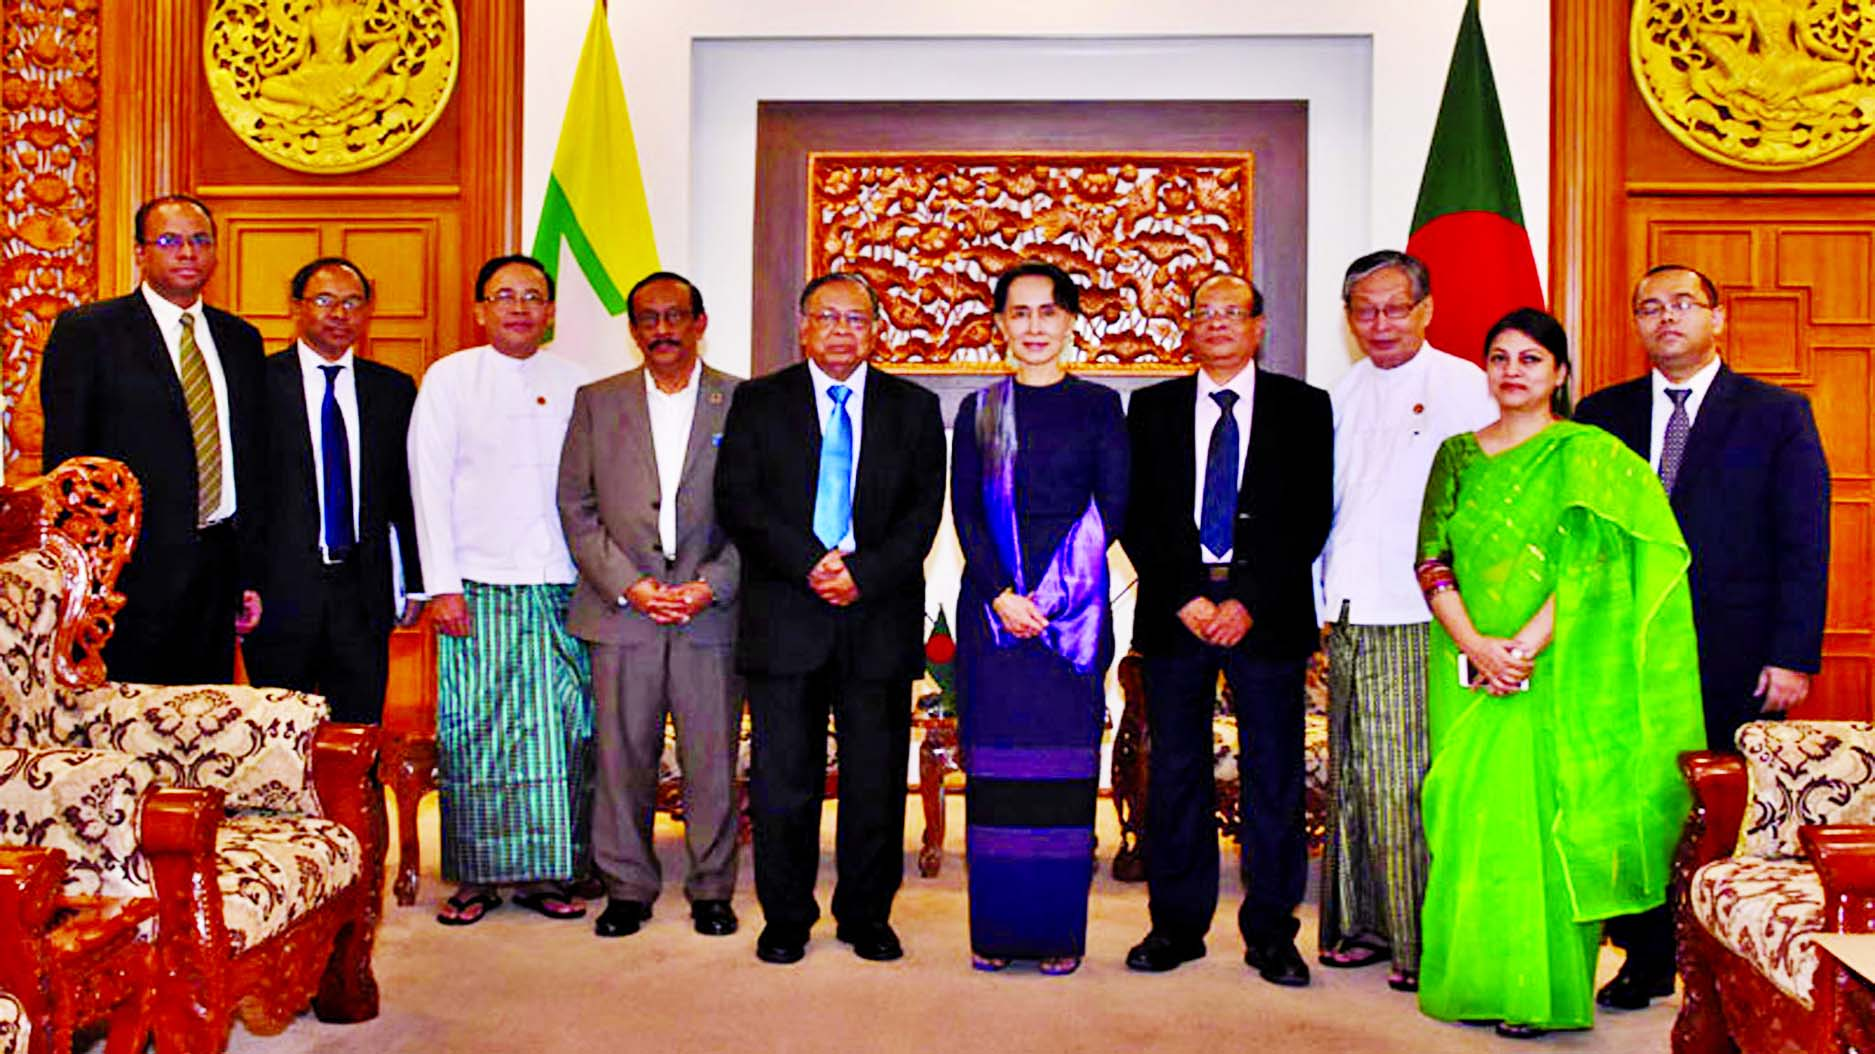 The Bangladesh delegation led by Foreign Minister AH Mahmood Ali and the Myanmar team led by State Counsellor Aung San Suu Kyi pose for photographs after signing the 'arrangement on return of displaced persons to Rakhine State' in Naypyidaw on Thursday.